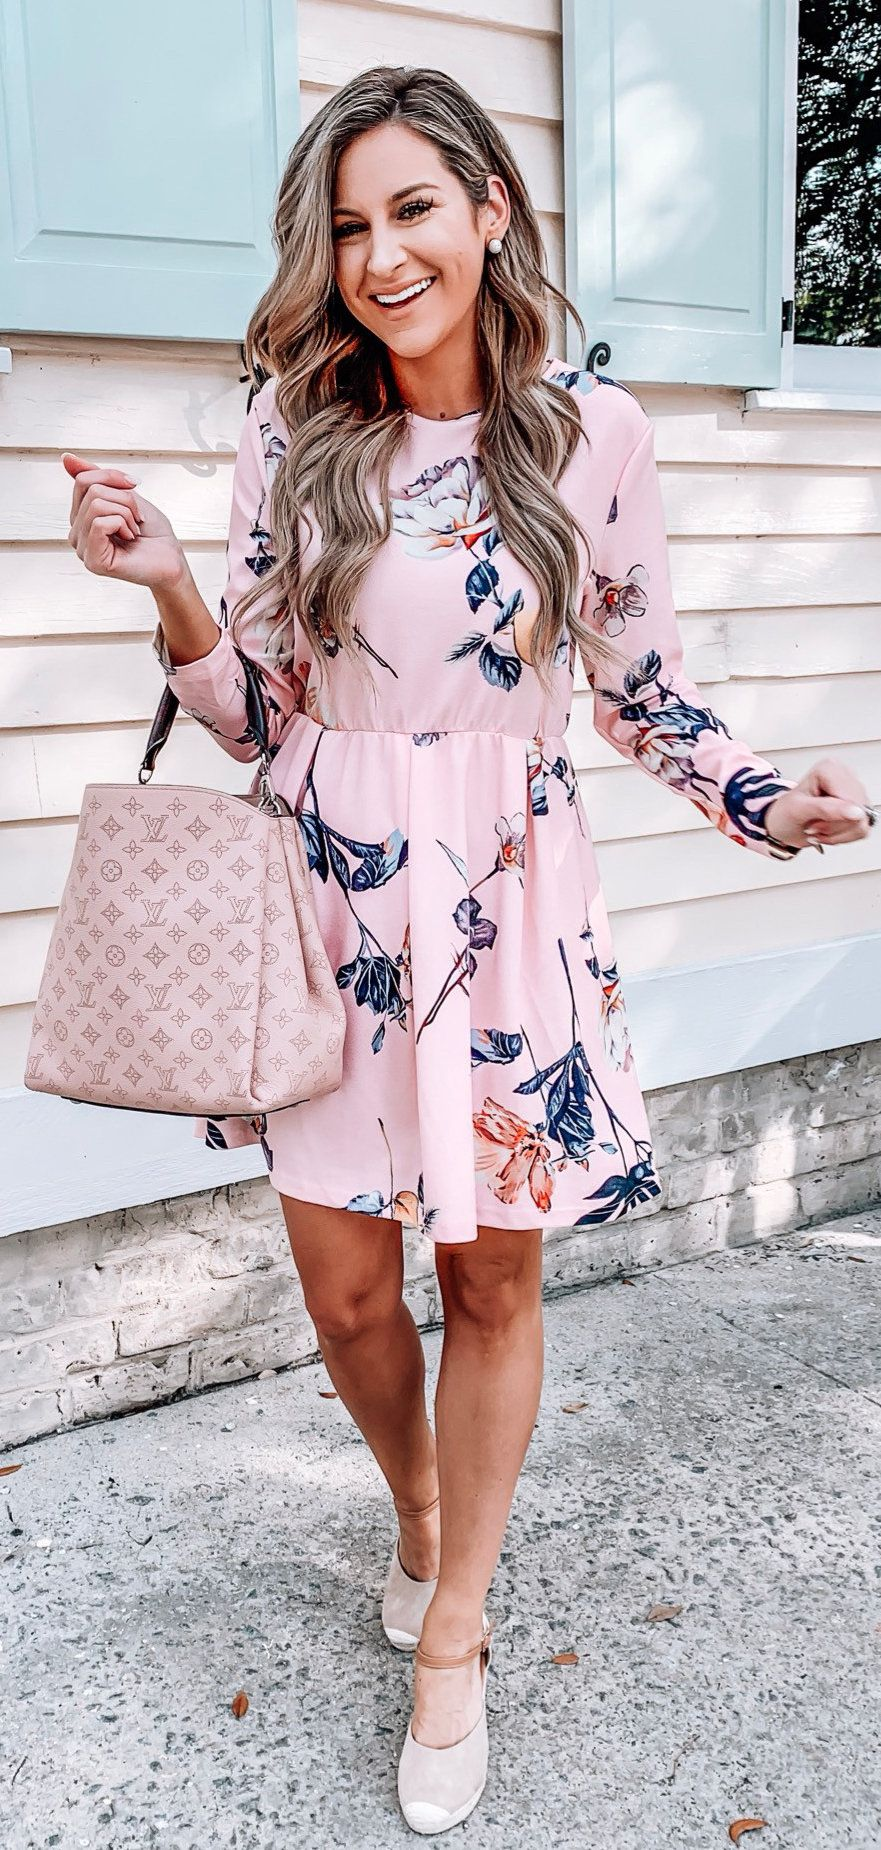 white and black floral print dress #winter #outfits